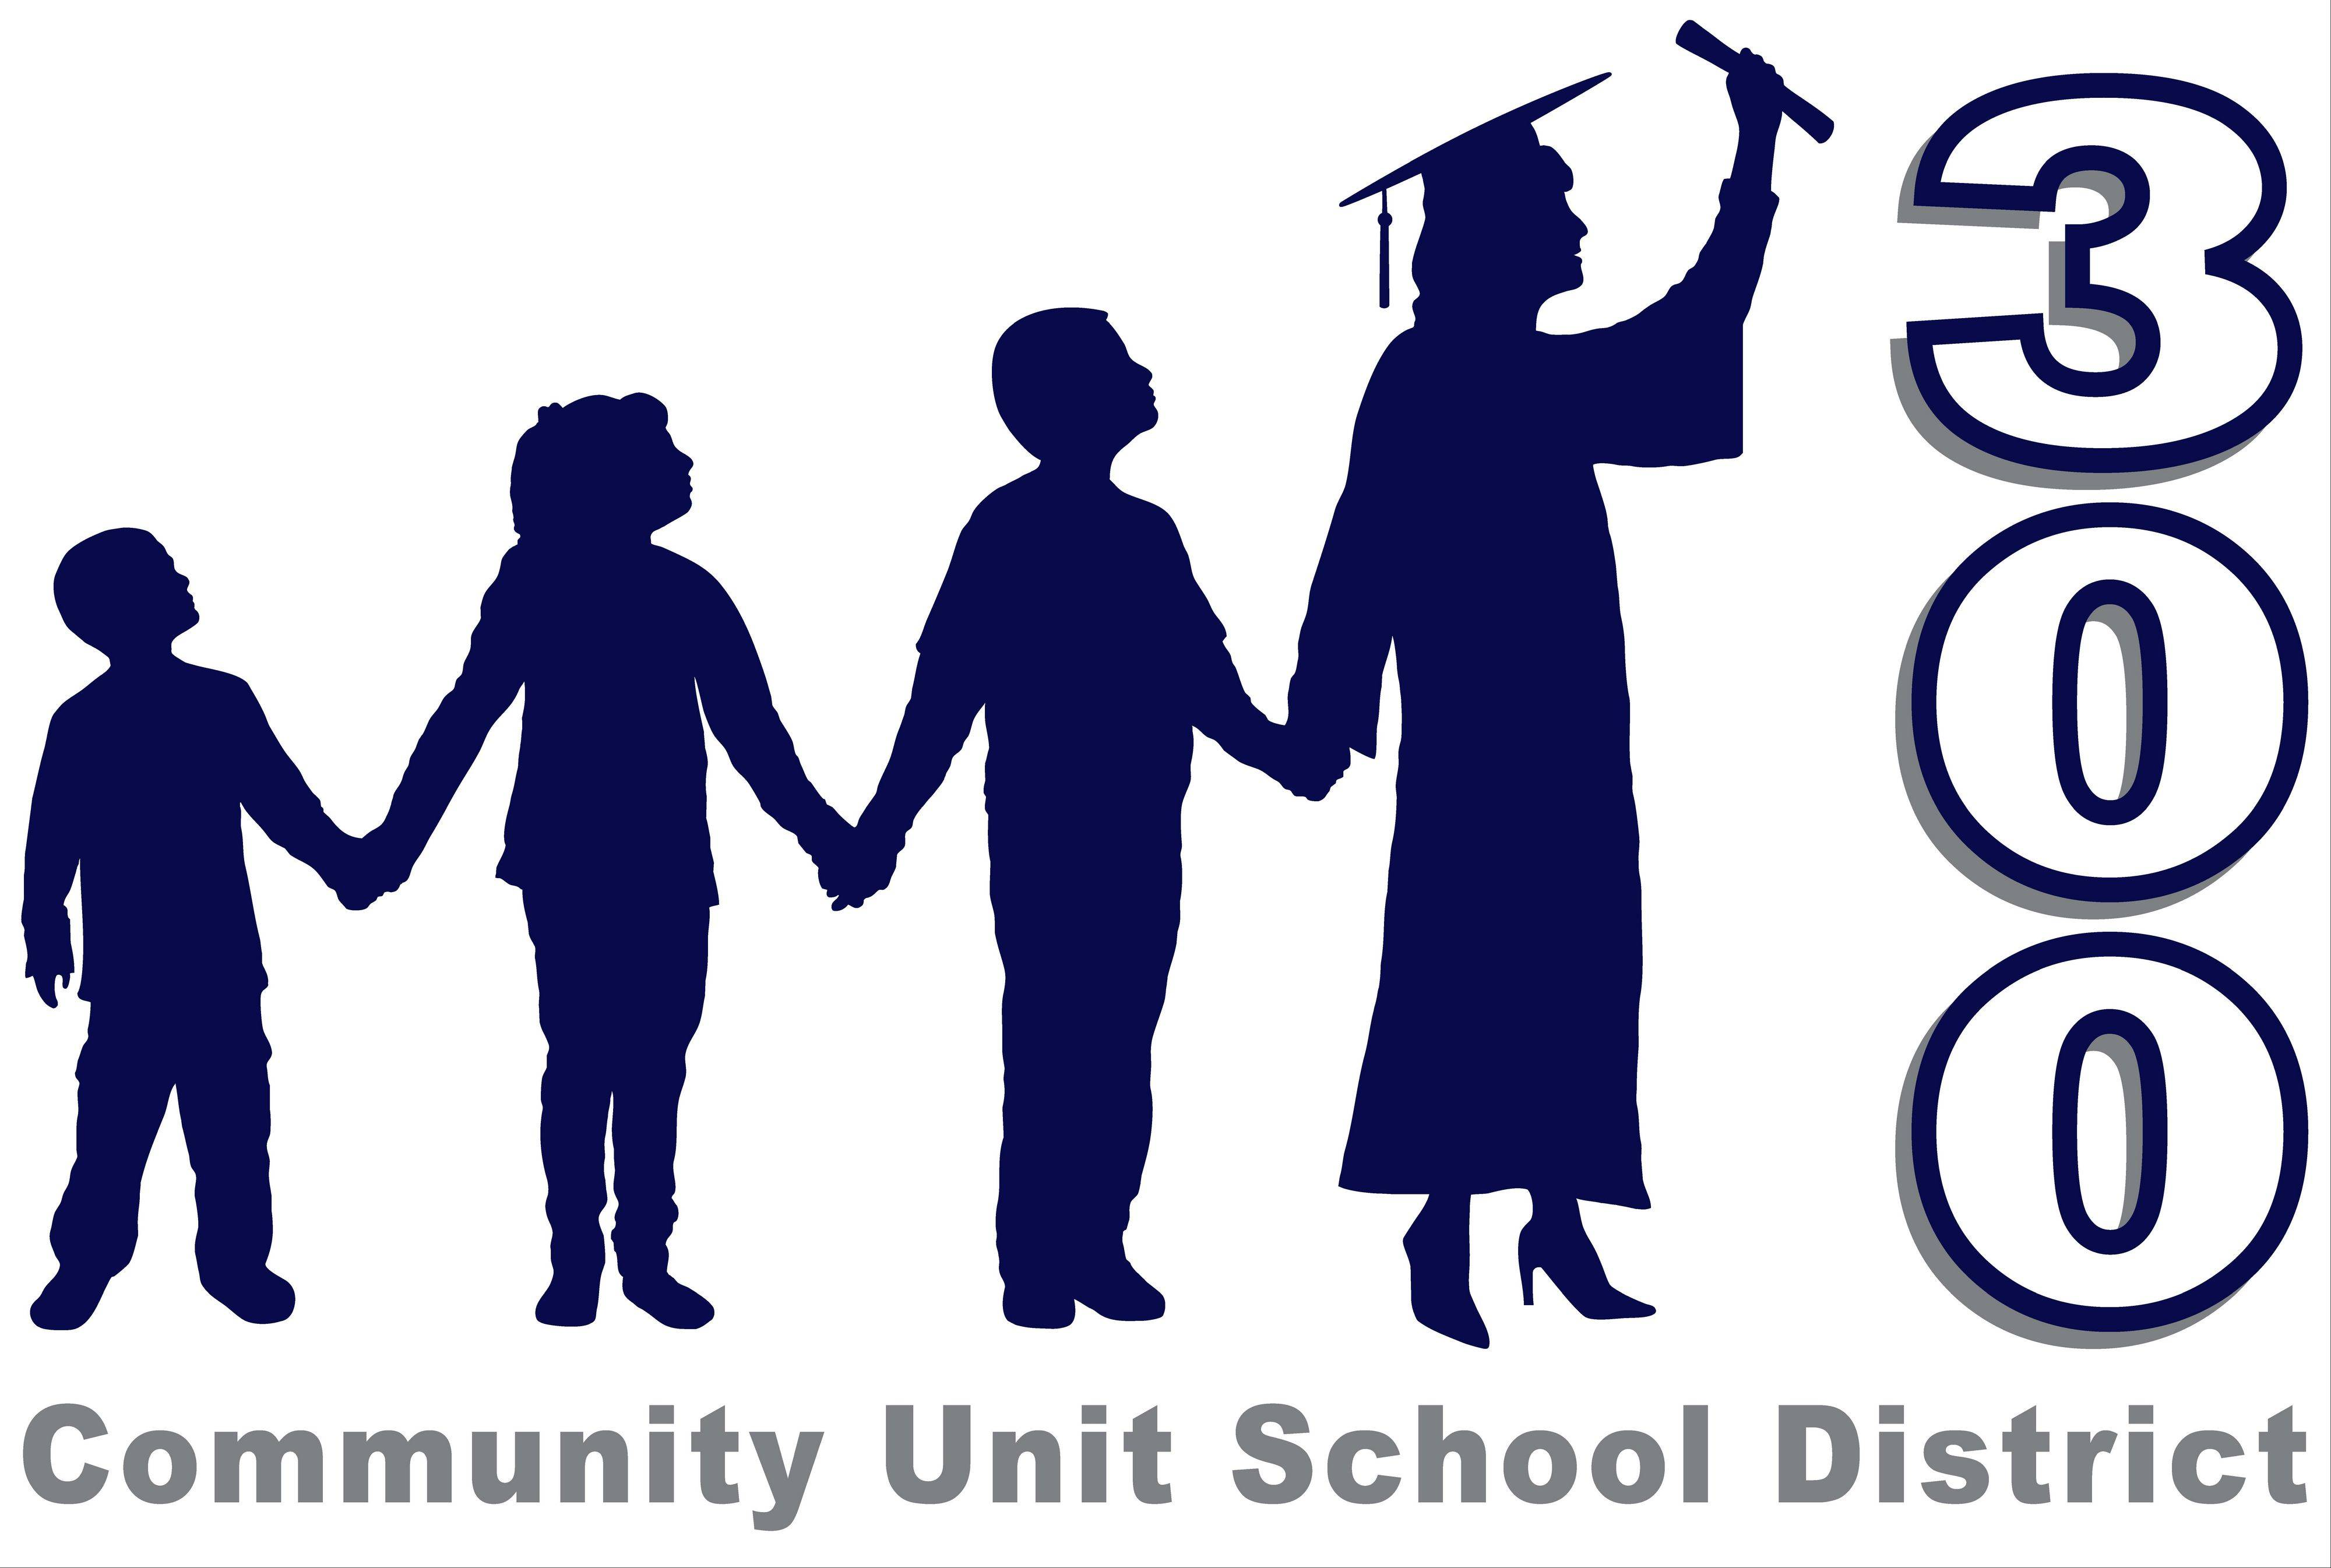 The new logo for Community Unit District 300, as of 2011-12 school year.